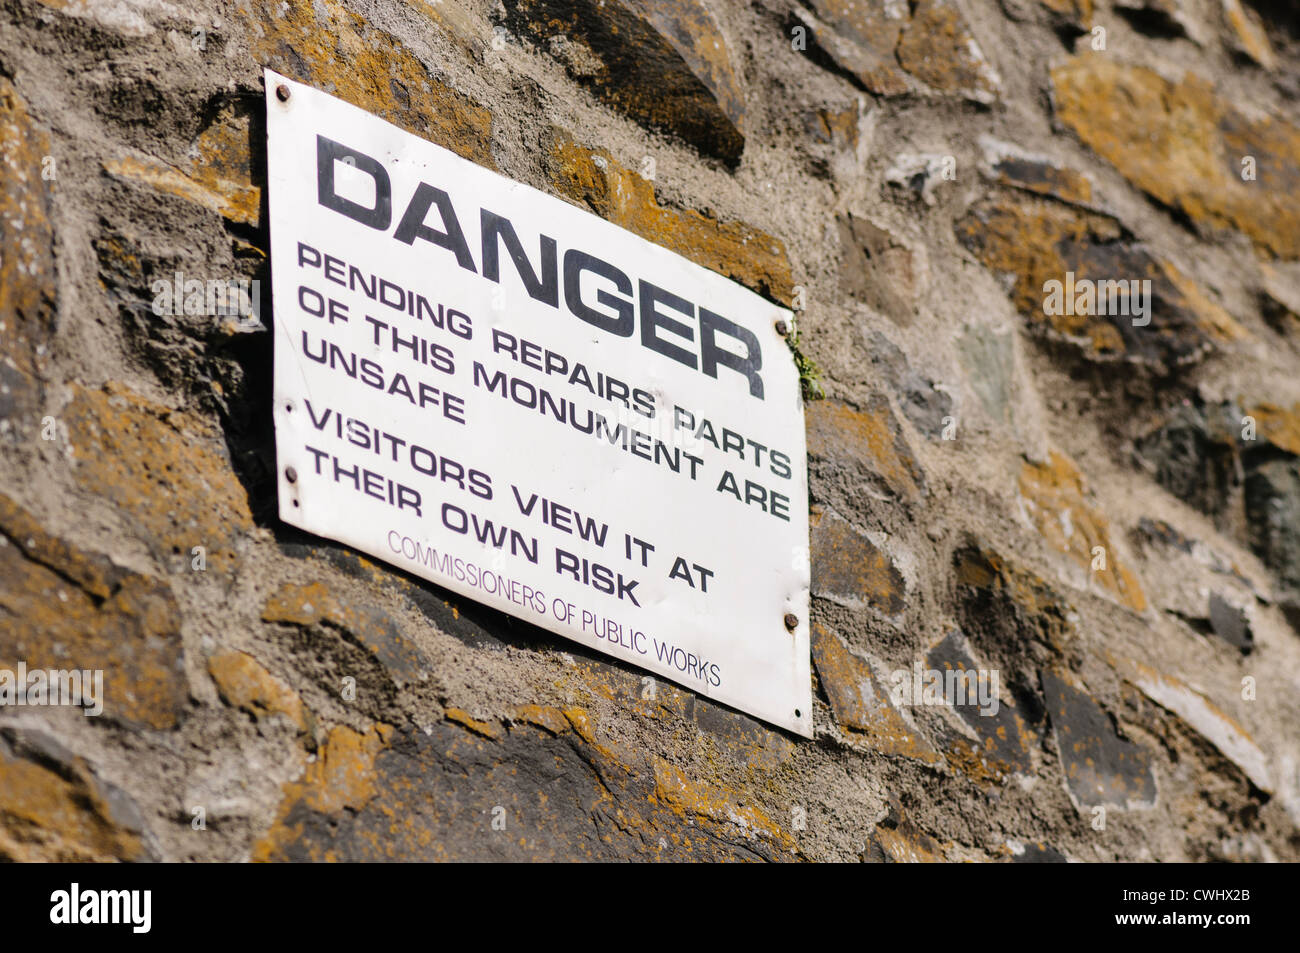 Sign warning visitors that a monument is unsafe, and advising them that they view at their own risk. Stock Photo